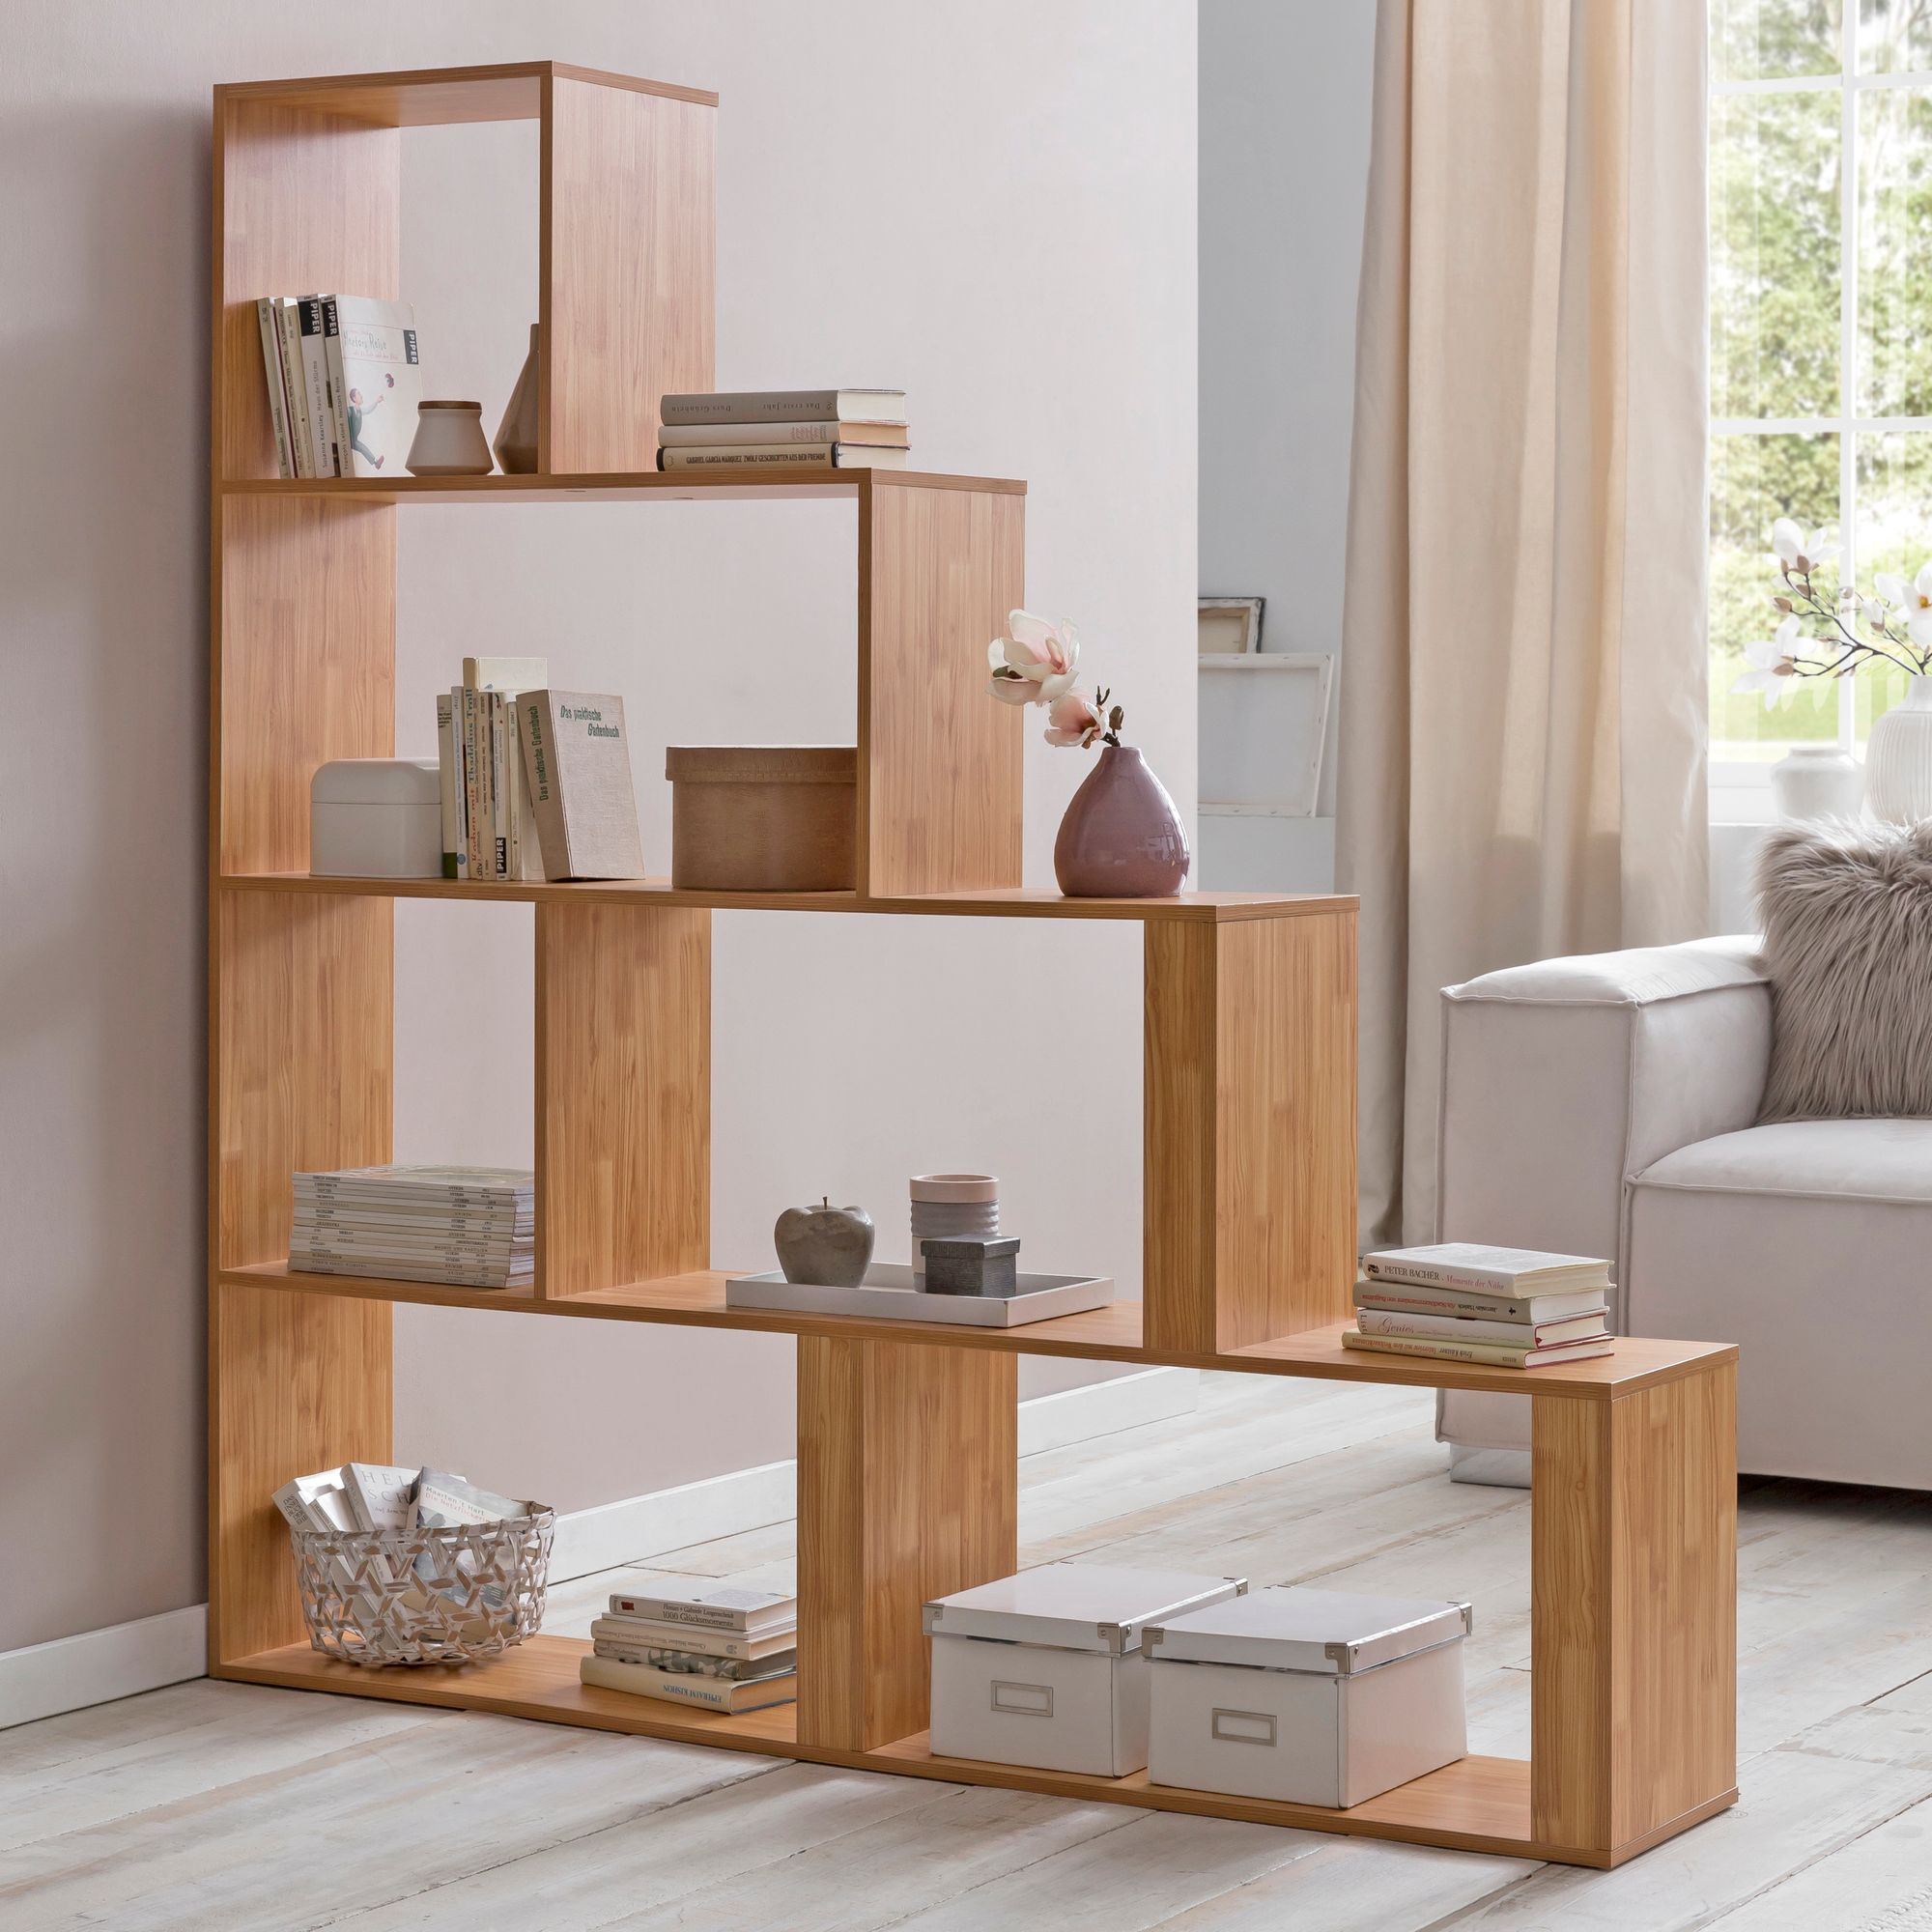 Regal Raumteiler Details Zu Finebuy Stufenregal Holz Treppenregal Bücherregal Standregal Raumteiler Regal